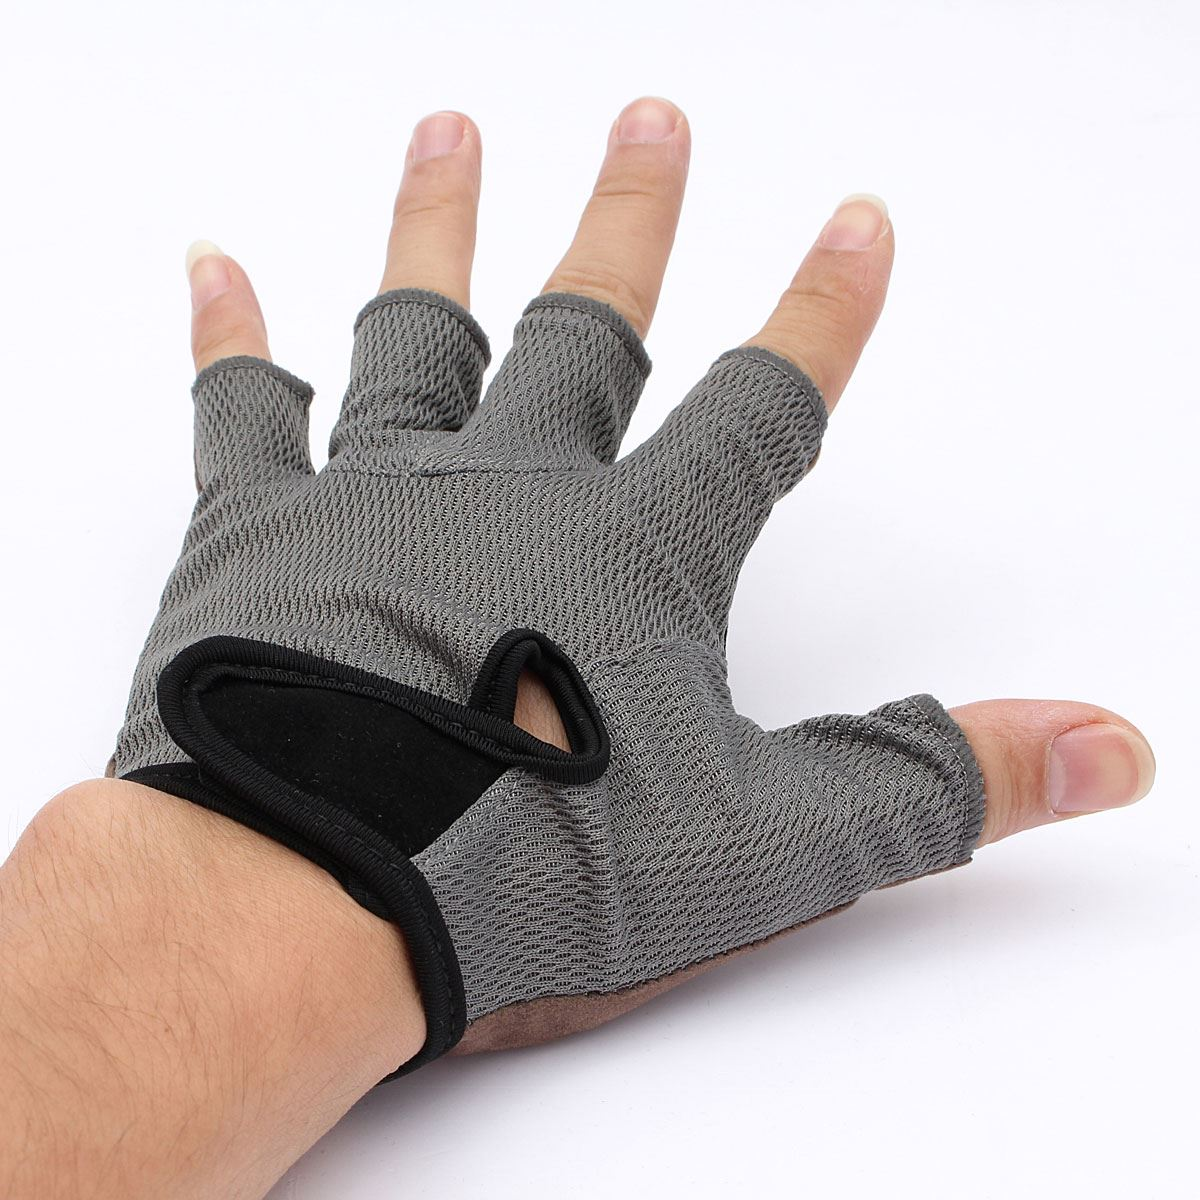 Hand gloves for bike in bangalore dating 6